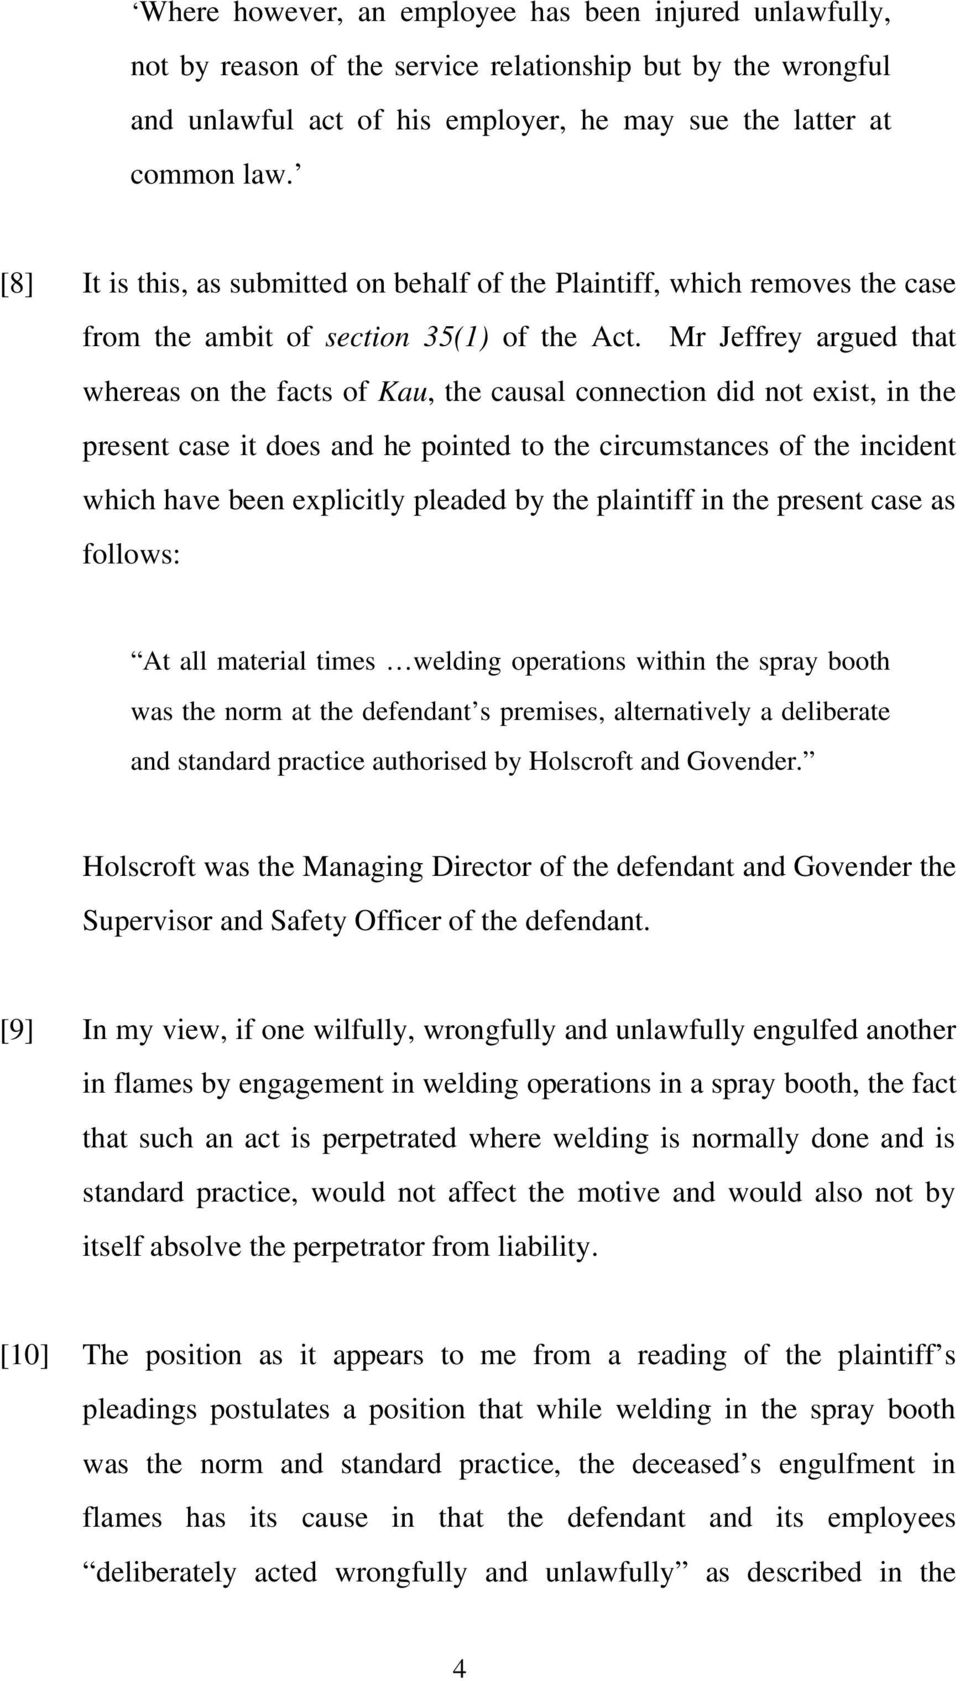 Mr Jeffrey argued that whereas on the facts of Kau, the causal connection did not exist, in the present case it does and he pointed to the circumstances of the incident which have been explicitly